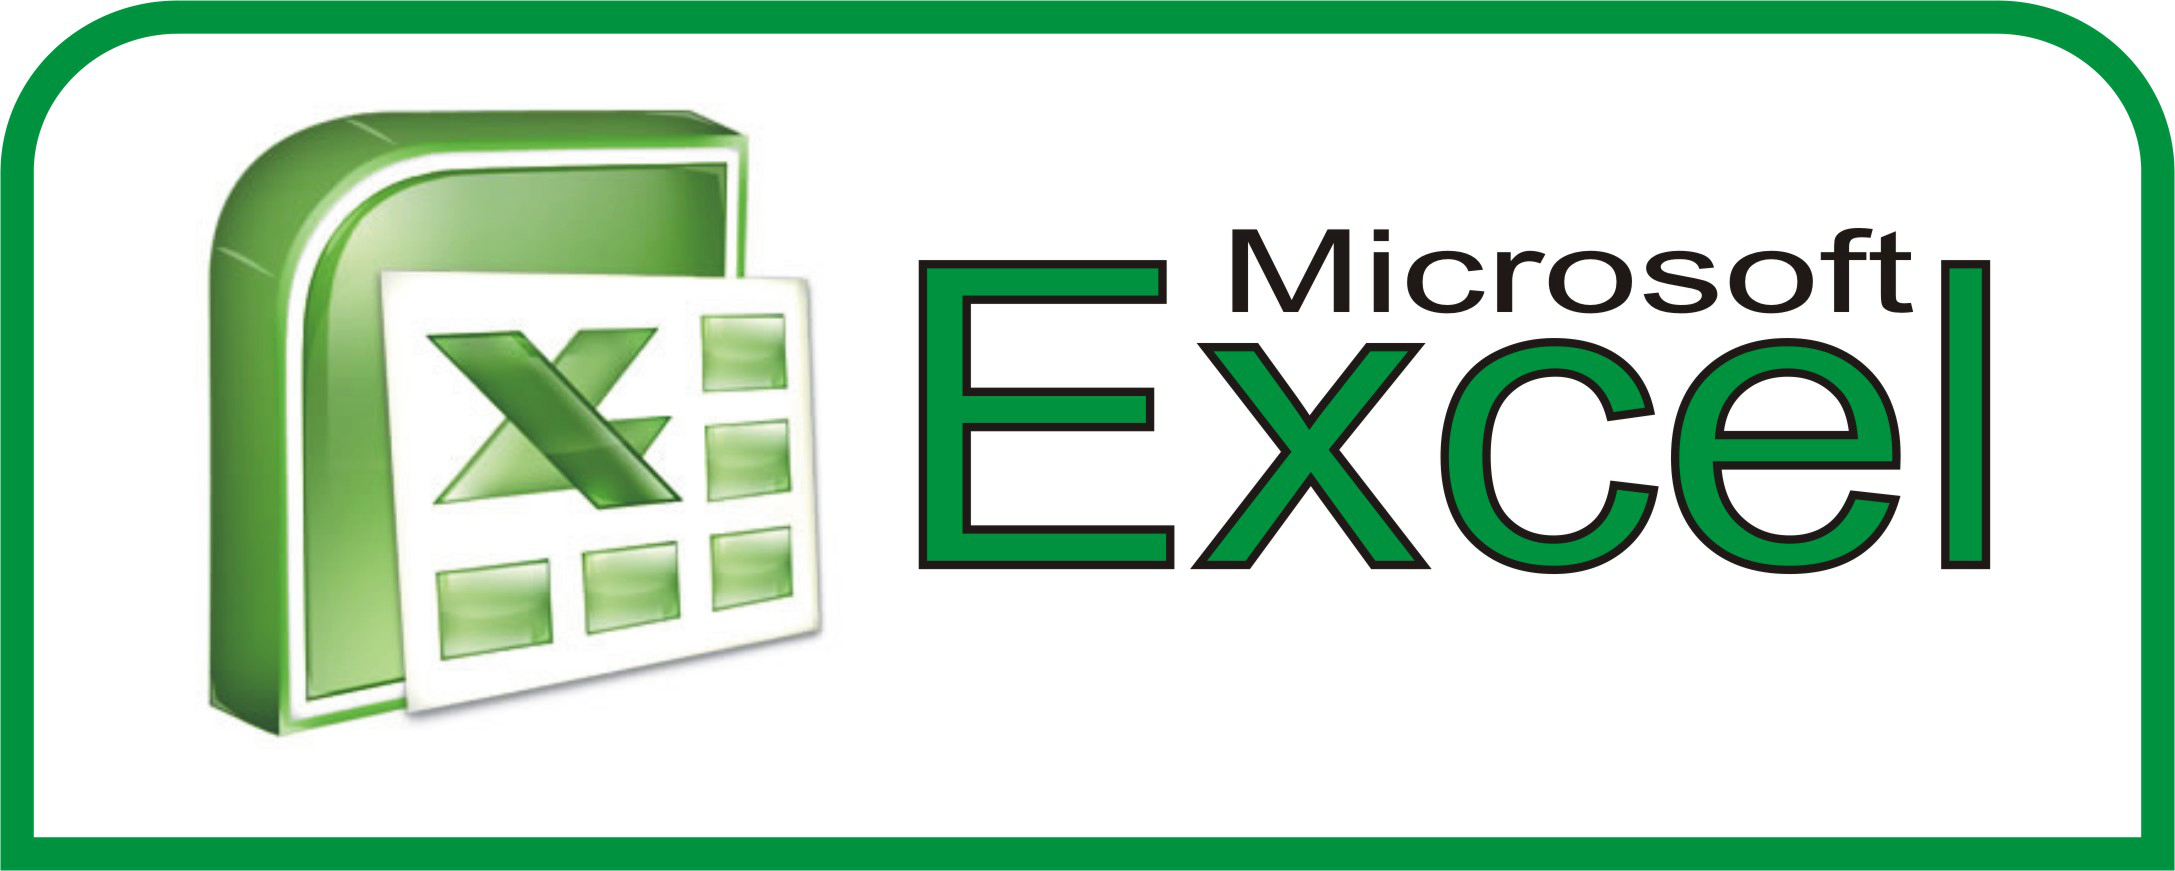 Ediblewildsus  Terrific  Excel Shortcuts You Probably Didnt Know About  Techdissected With Licious Export Excel To Mysql Besides Excel Merge Cells Without Losing Data Furthermore Retirement Excel Spreadsheet With Charming Find Links Excel Also Excel Multiple If Function In Addition Excel Tips For Beginners And Export Itunes Library To Excel As Well As Excel If Statement With  Conditions Additionally Absolute Values Excel From Techdissectedcom With Ediblewildsus  Licious  Excel Shortcuts You Probably Didnt Know About  Techdissected With Charming Export Excel To Mysql Besides Excel Merge Cells Without Losing Data Furthermore Retirement Excel Spreadsheet And Terrific Find Links Excel Also Excel Multiple If Function In Addition Excel Tips For Beginners From Techdissectedcom